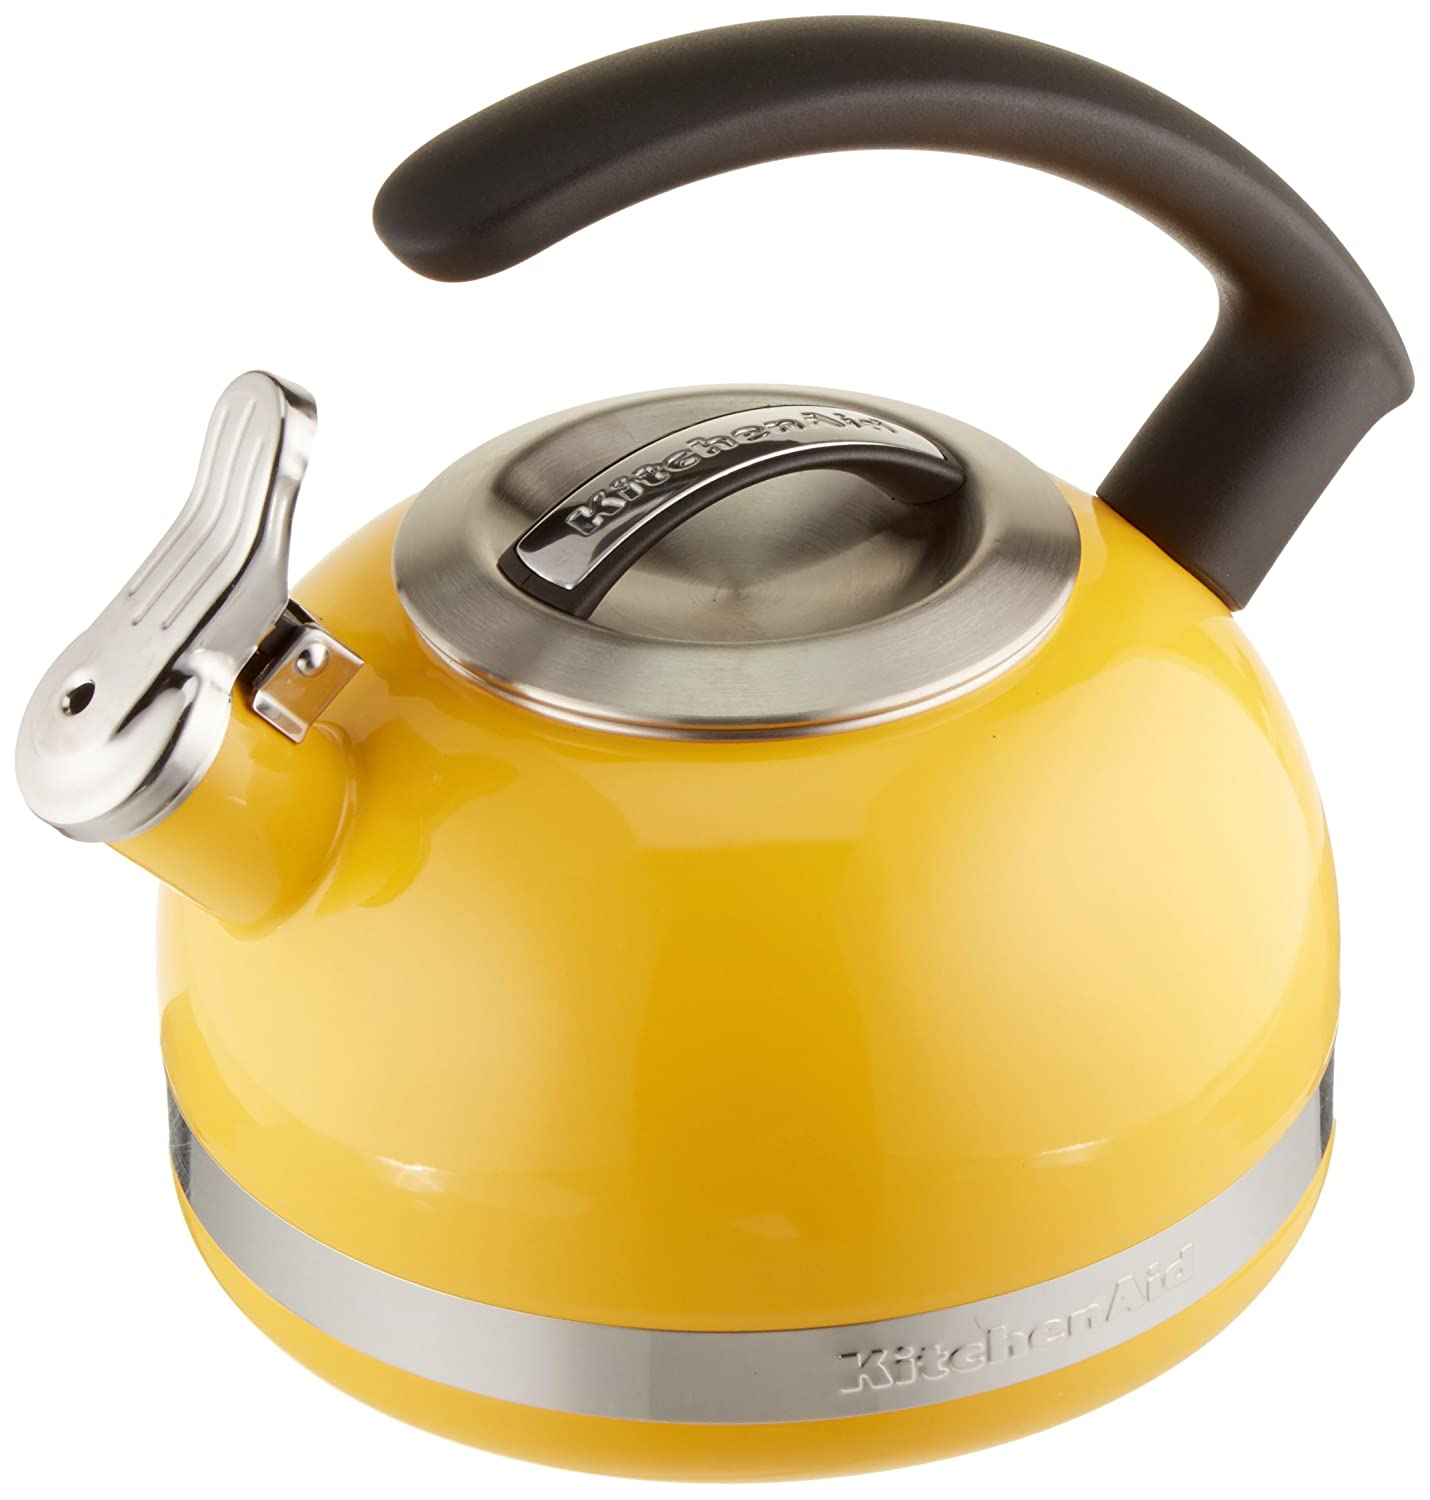 Top 5 Of The Best Tea Kettle For Gas Stove – Reviews & Buyer's Guide 3